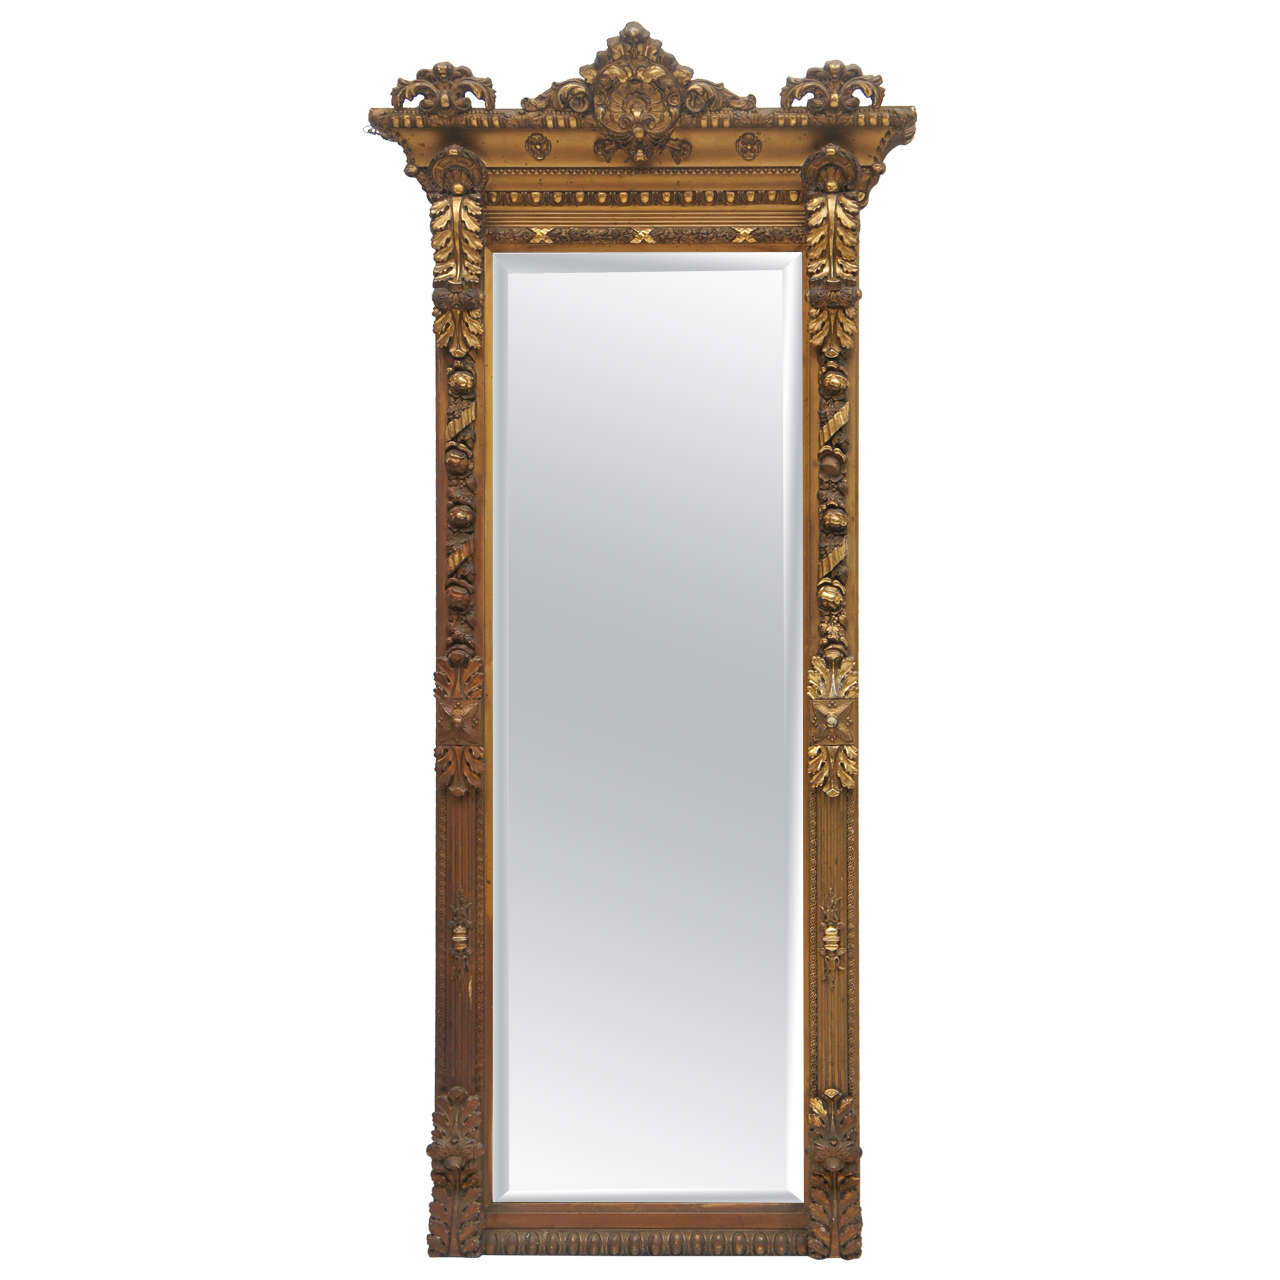 1800 39 s long gold gilded floor or mantle mirror at 1stdibs